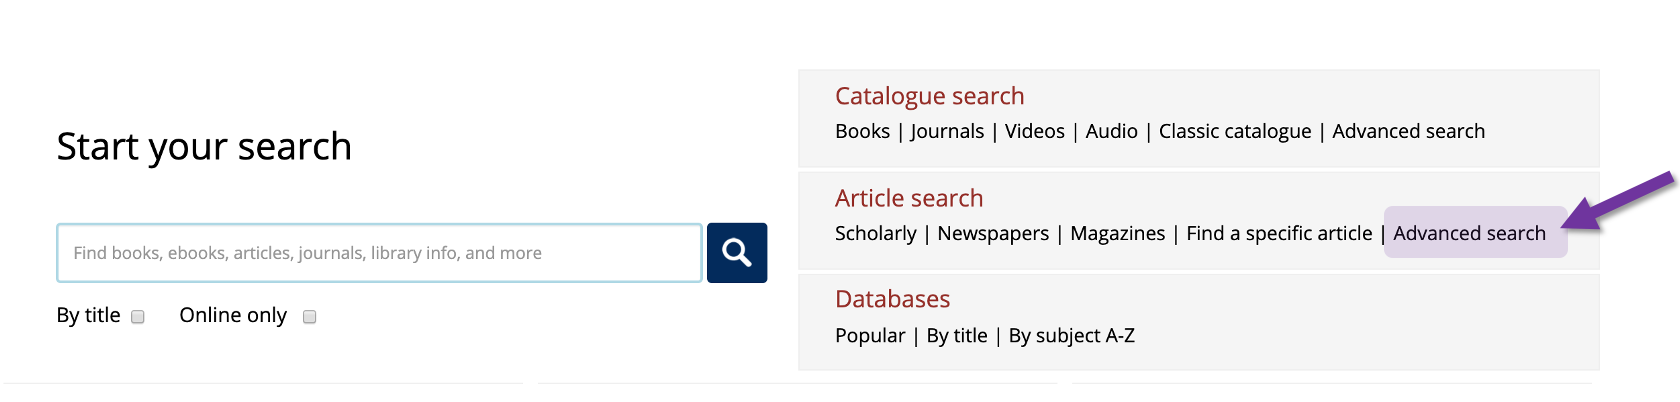 Screenshot of the University of Toronto libraries homepage with attention being drawn to the Advance search link under the Article Search heading.